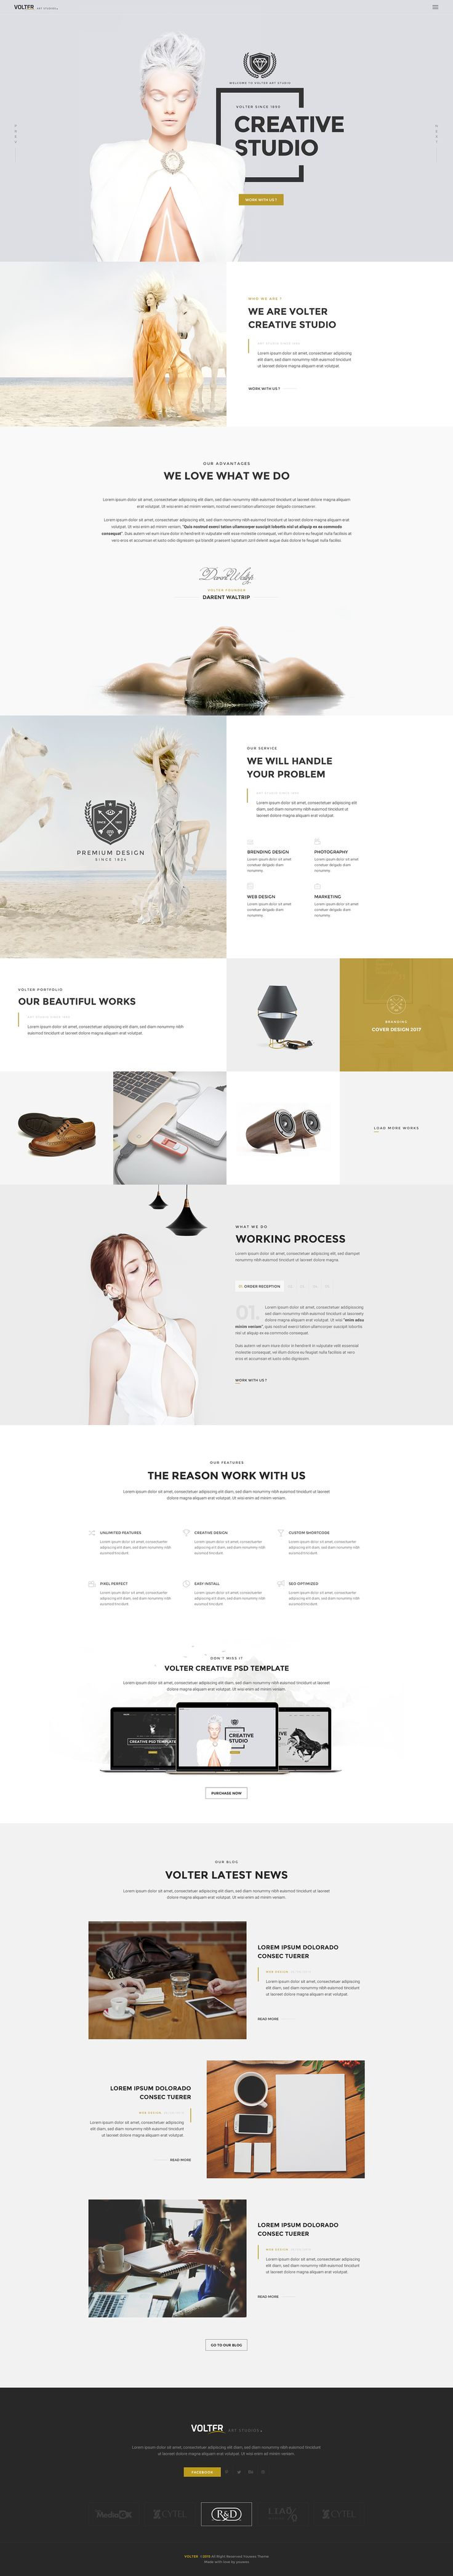 the whole package here : http://themeforest.net/item/volter-creative-psd-template/14954425